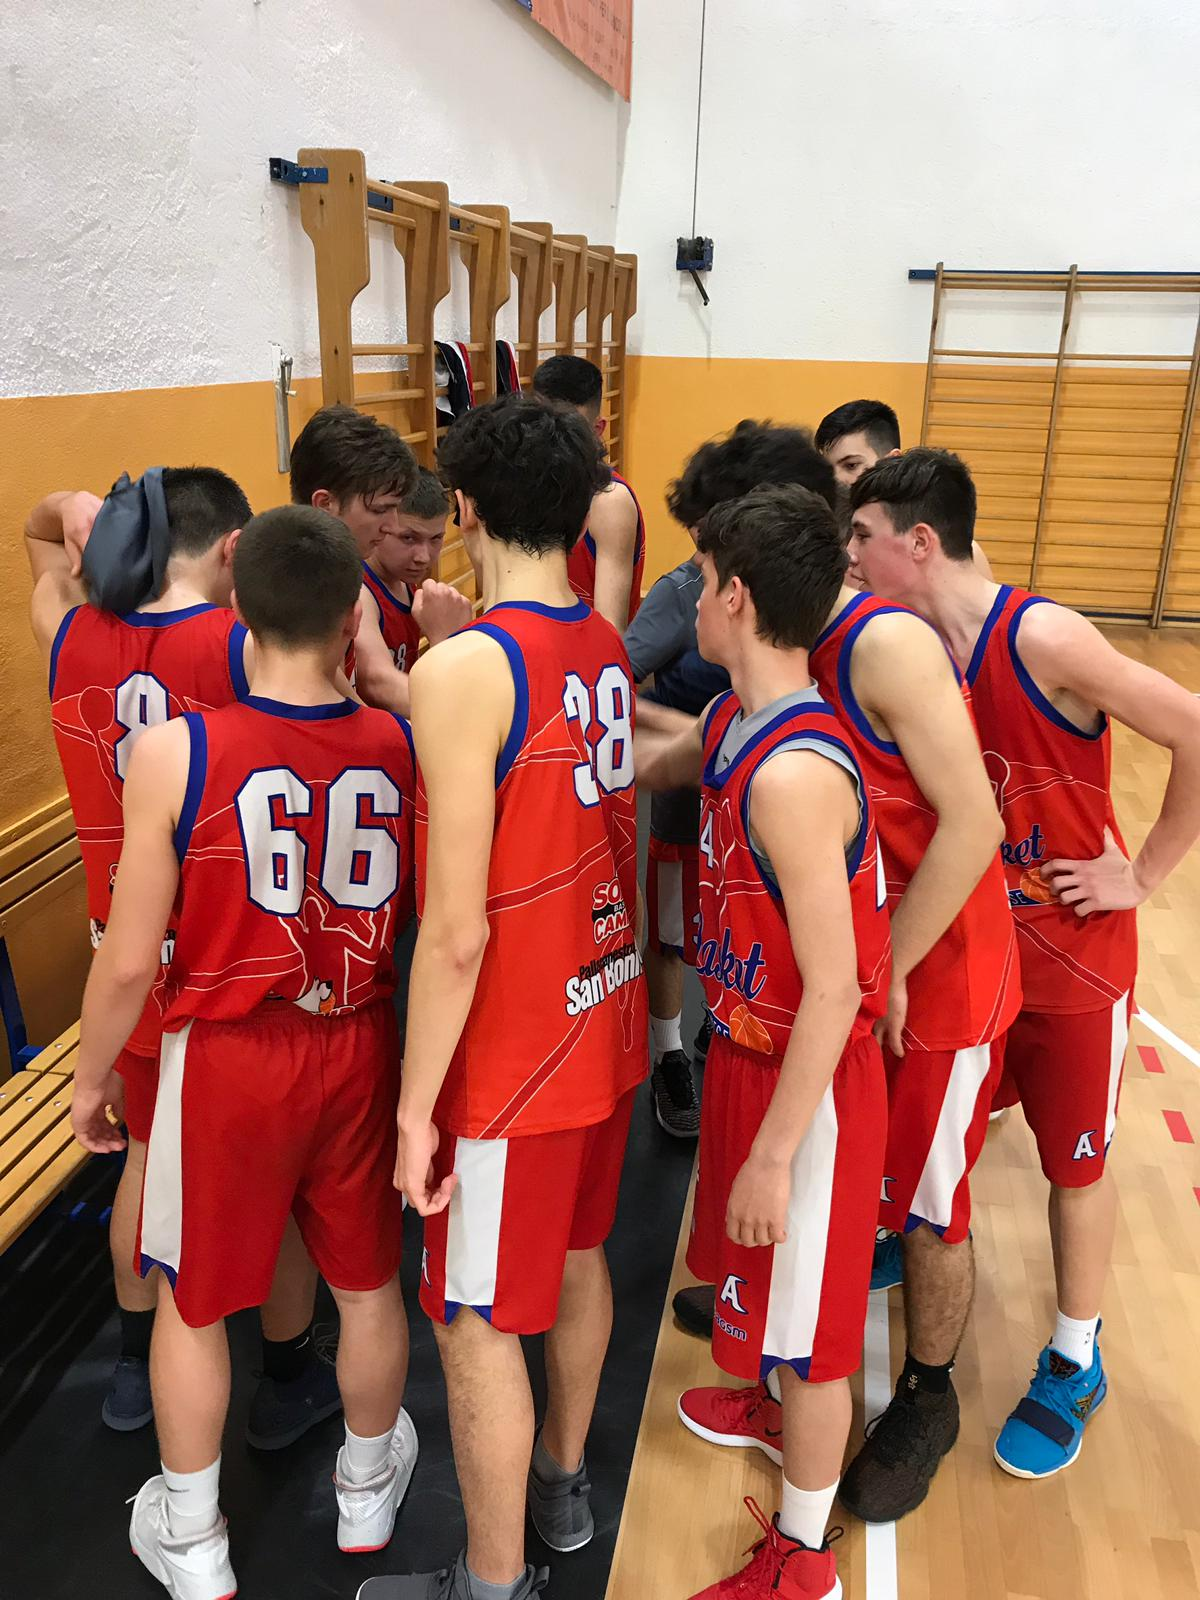 U16 fine vs Olimpia GB